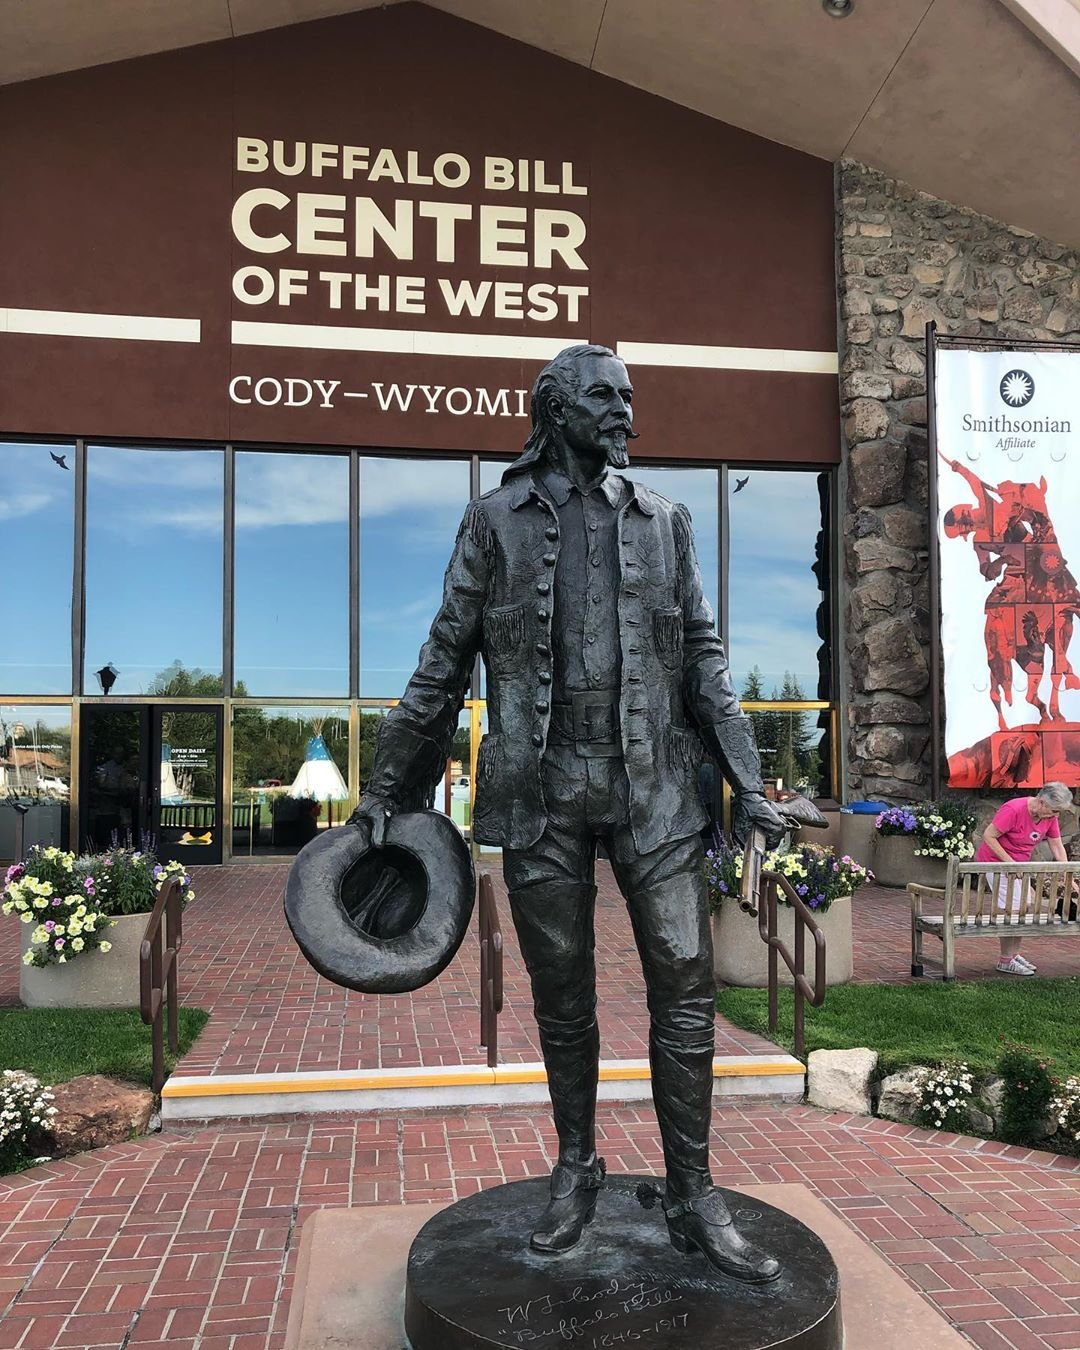 Buffalo Bill Cody Statue outside Buffalo Bill Center of the West